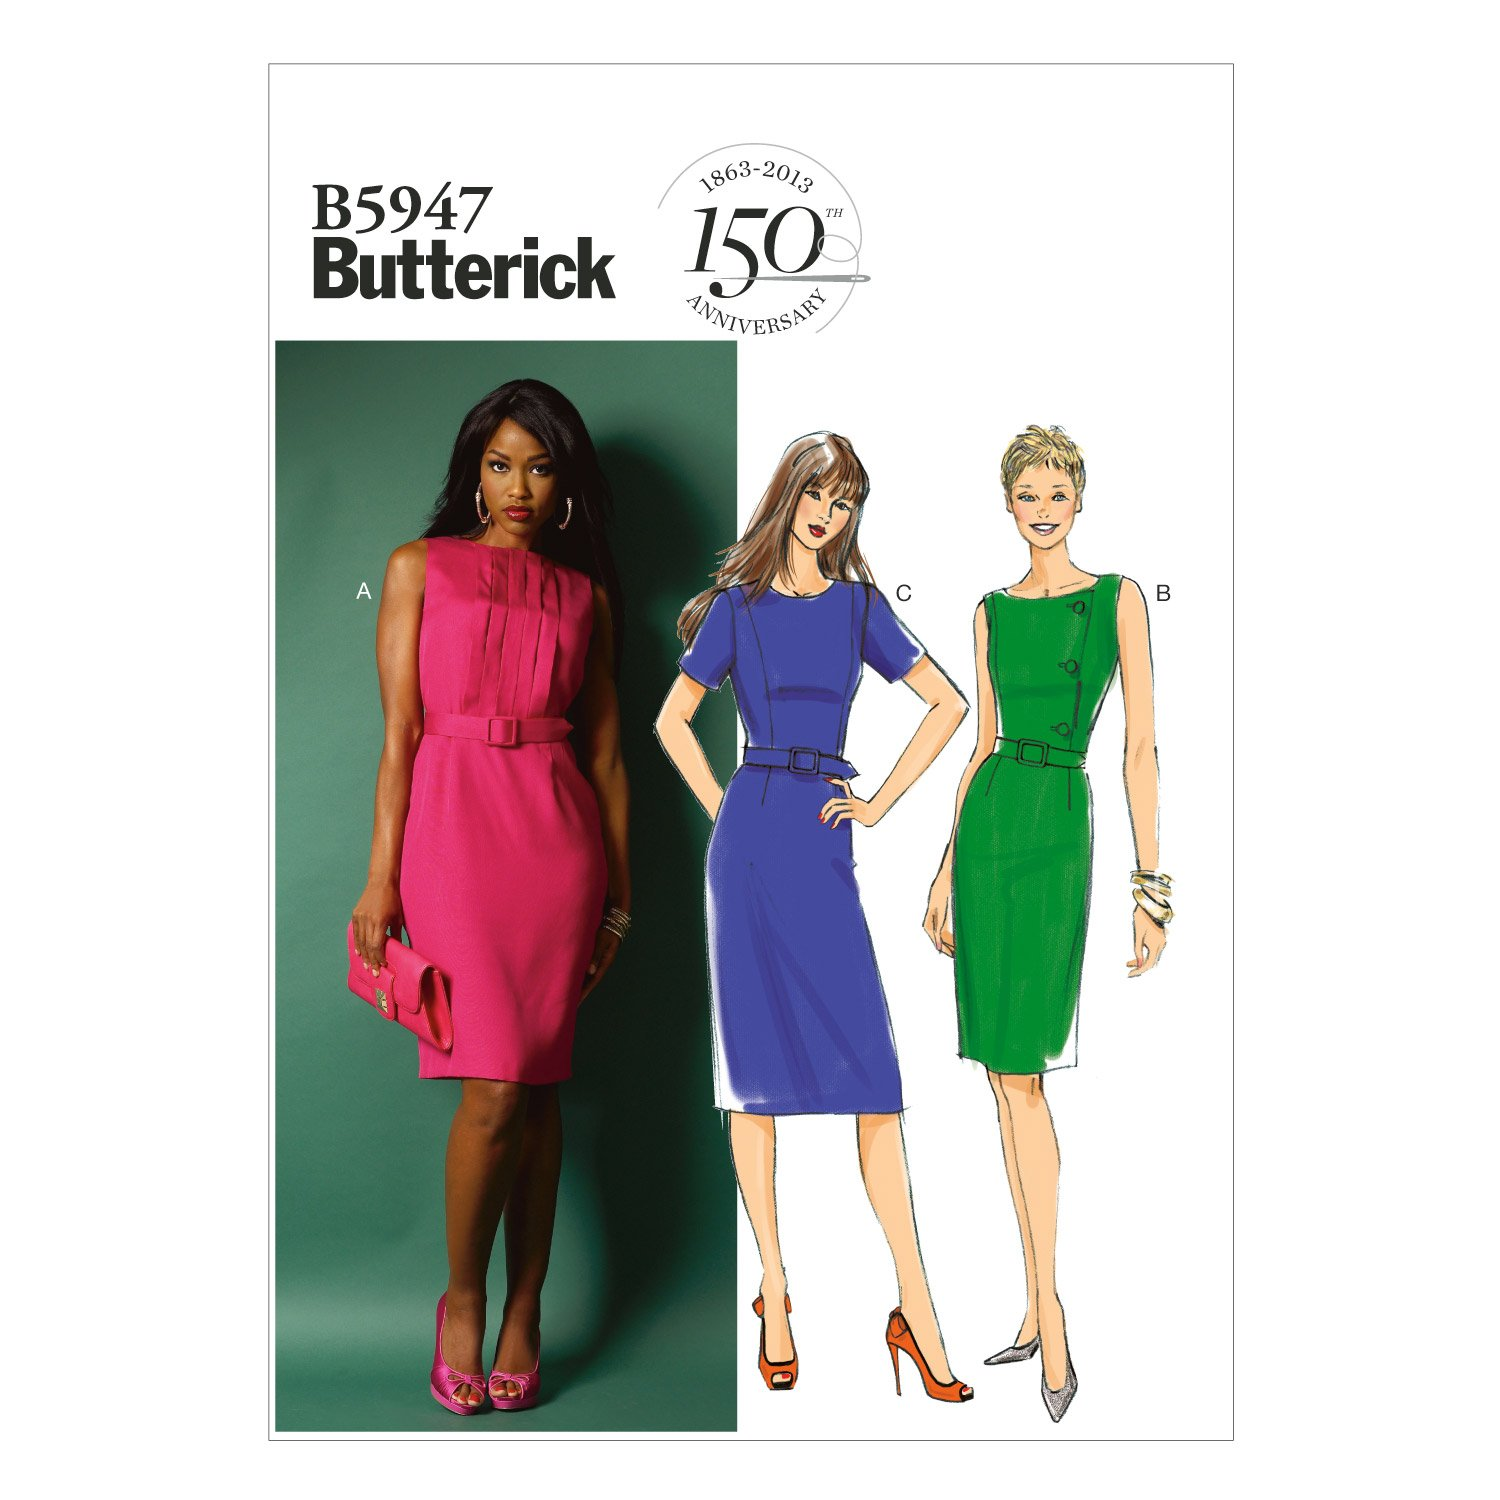 Butterick Patterns B5947 Misses'/Misses' Petite Dress and Belt Sewing Templates, Size F5 (16-18-20-22-24) by BUTTERICK PATTERNS   B00F0W0YRW